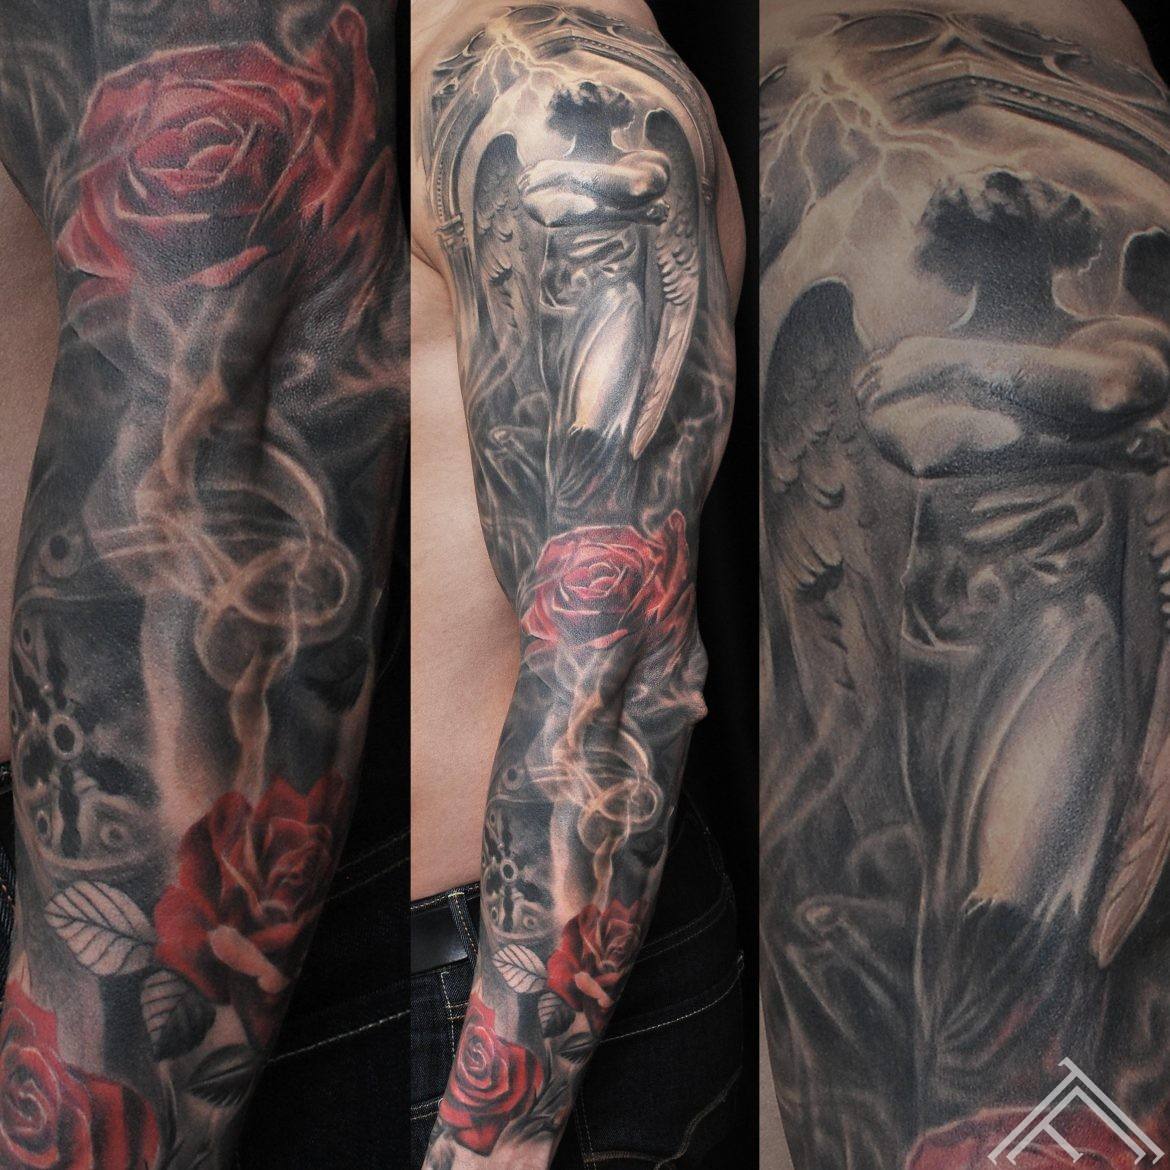 baroque-clockface-roses-tattoo-tattoofrequency-riga-art-fullsleeve